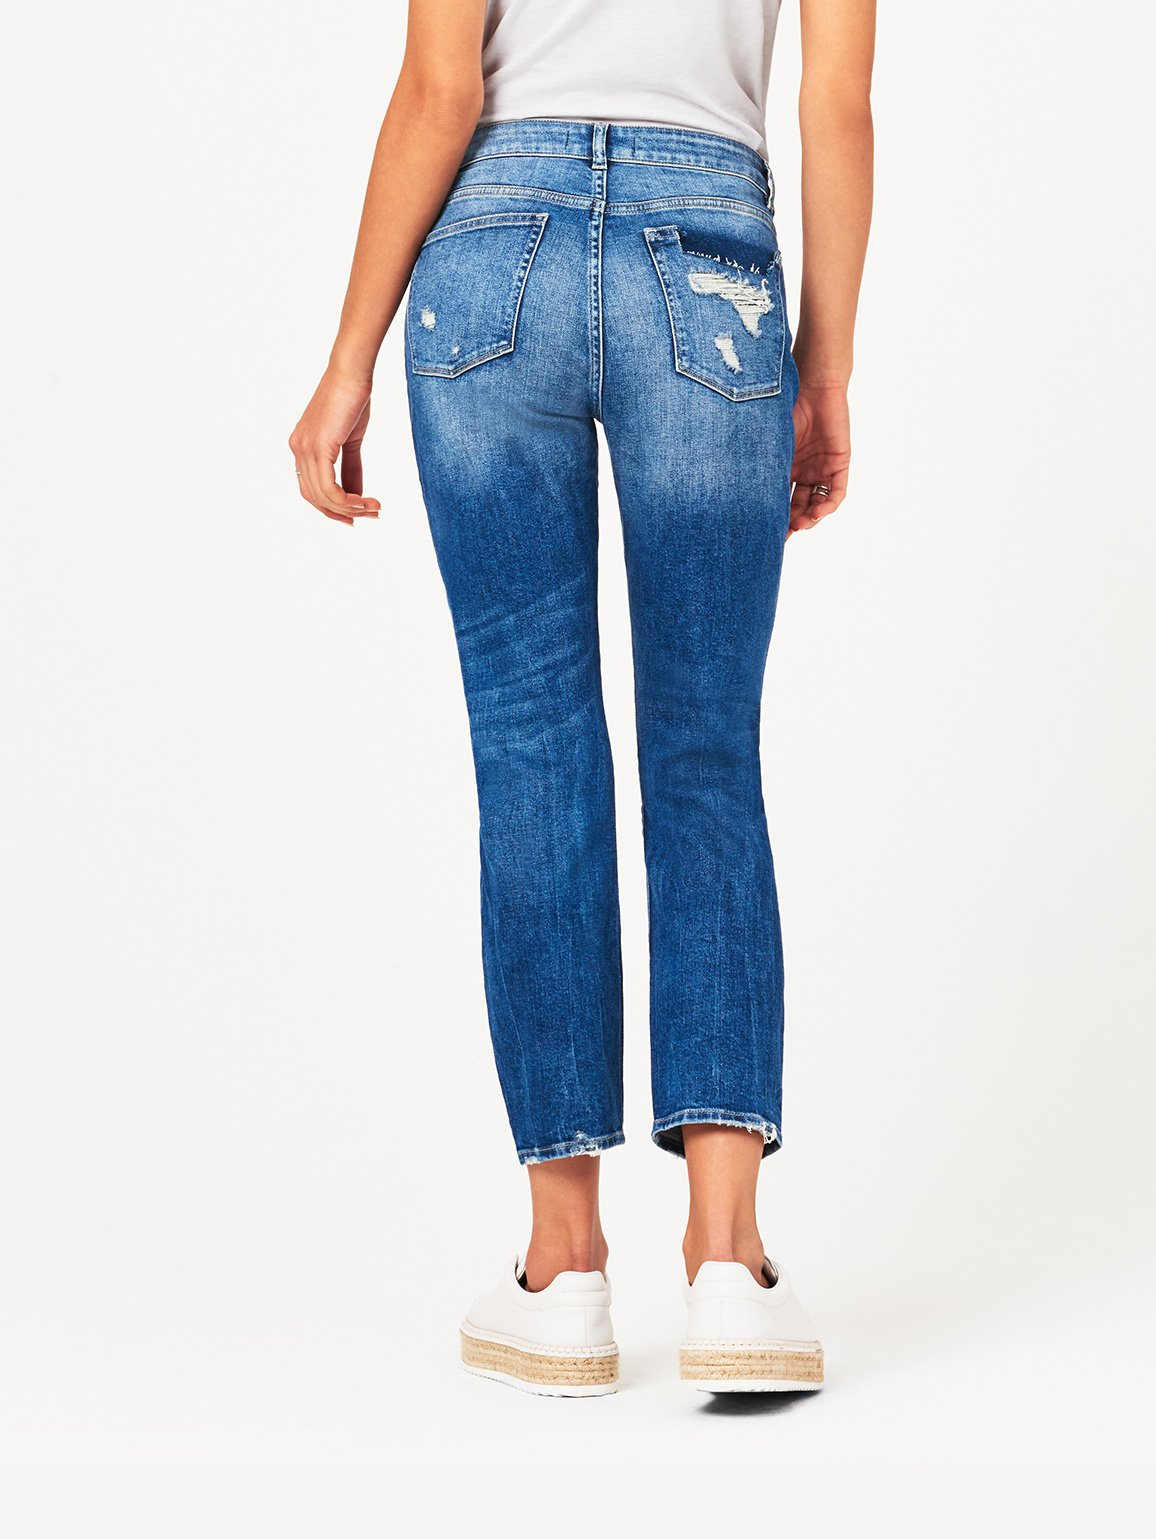 Stevie Mid Rise Slim Boyfriend | Rebel DL 1961 Denim